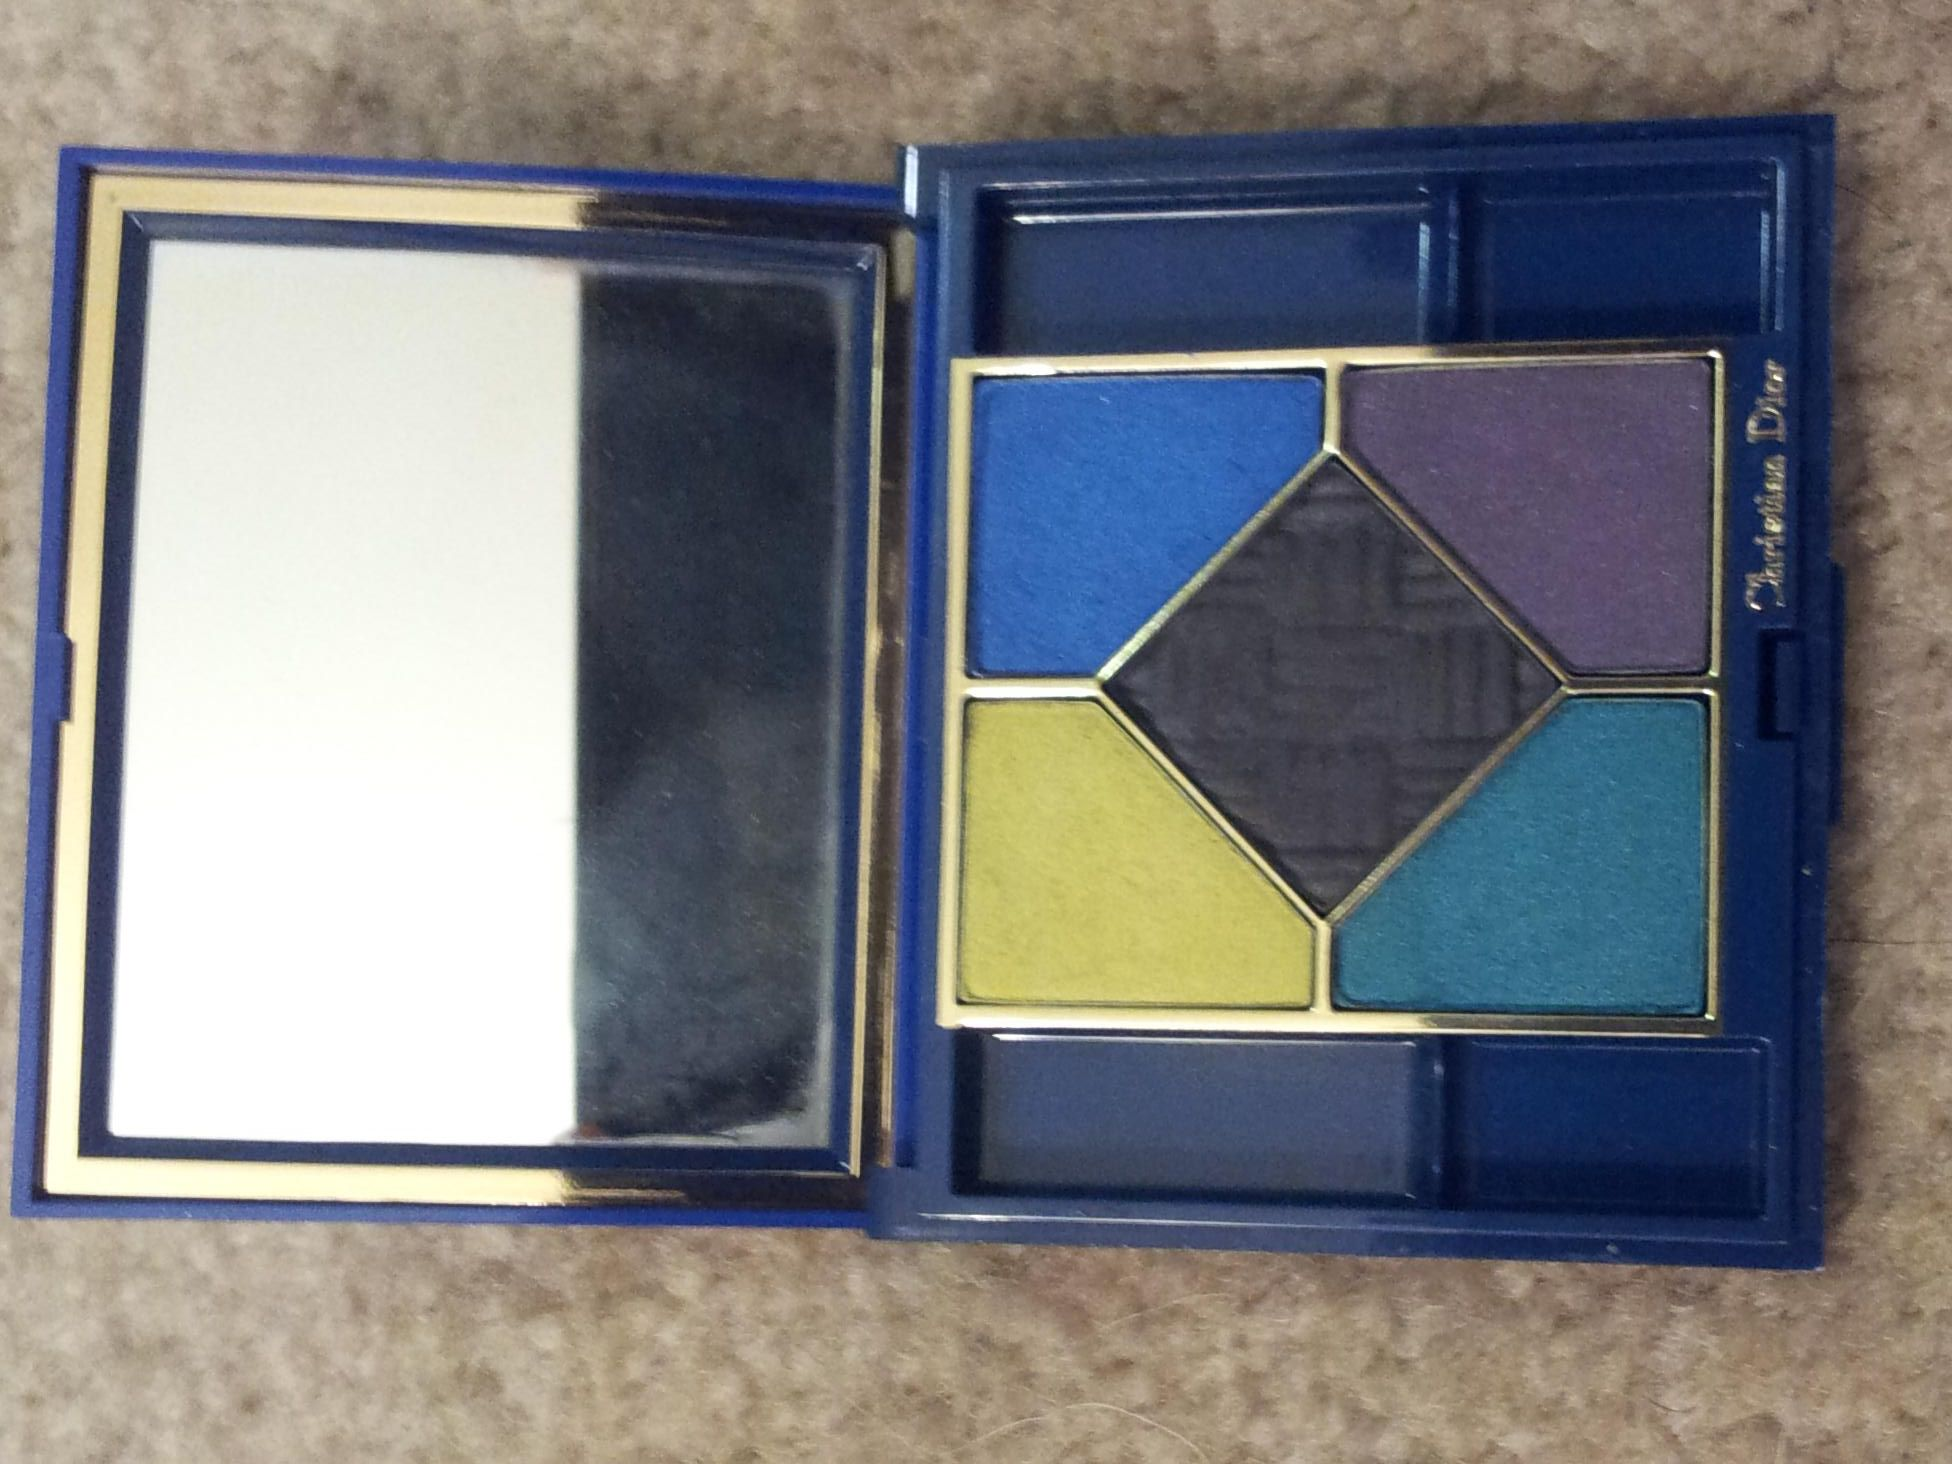 Christian Dior 5 Colour Eyeshadow Compact - used twice. Discontinued. $15